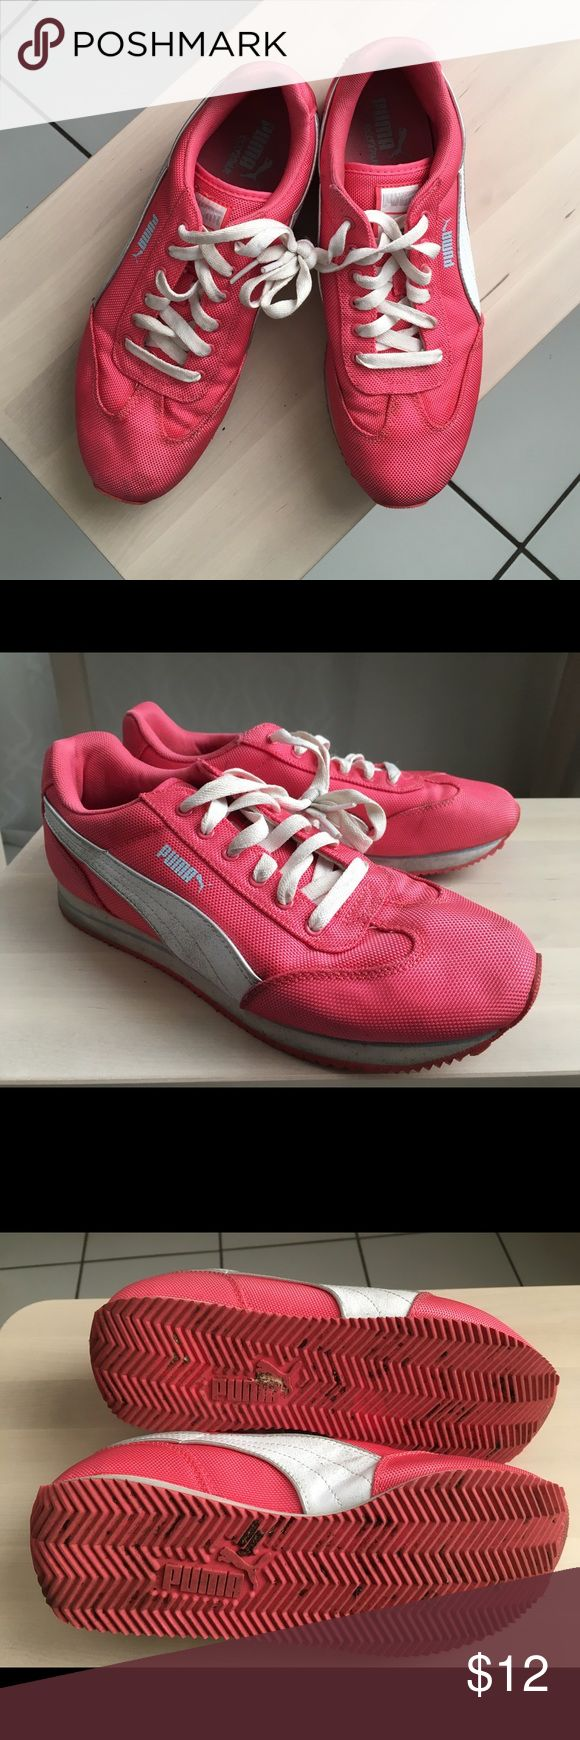 Women's size 9 hot pink Puma sneakers Size 9 Puma Eco Ortholite. Good used condition. Puma Shoes Athletic Shoes